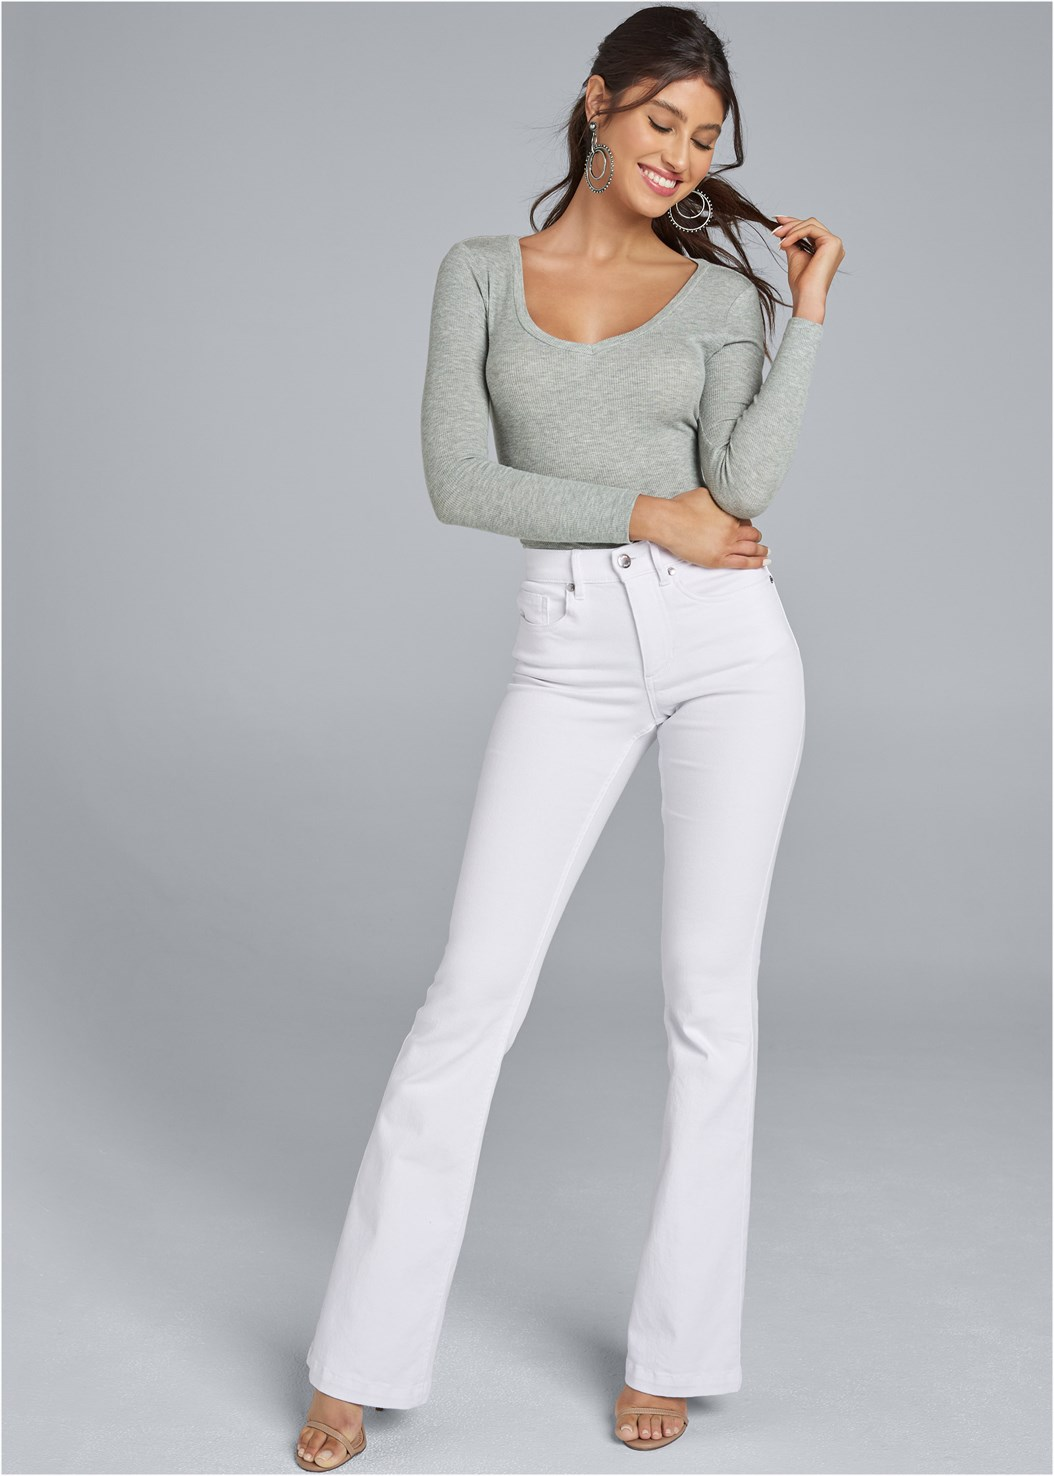 Casual Bootcut Jeans,Ribbed V-Neck Top,High Heel Strappy Sandals,Bead Detail Crochet Bag